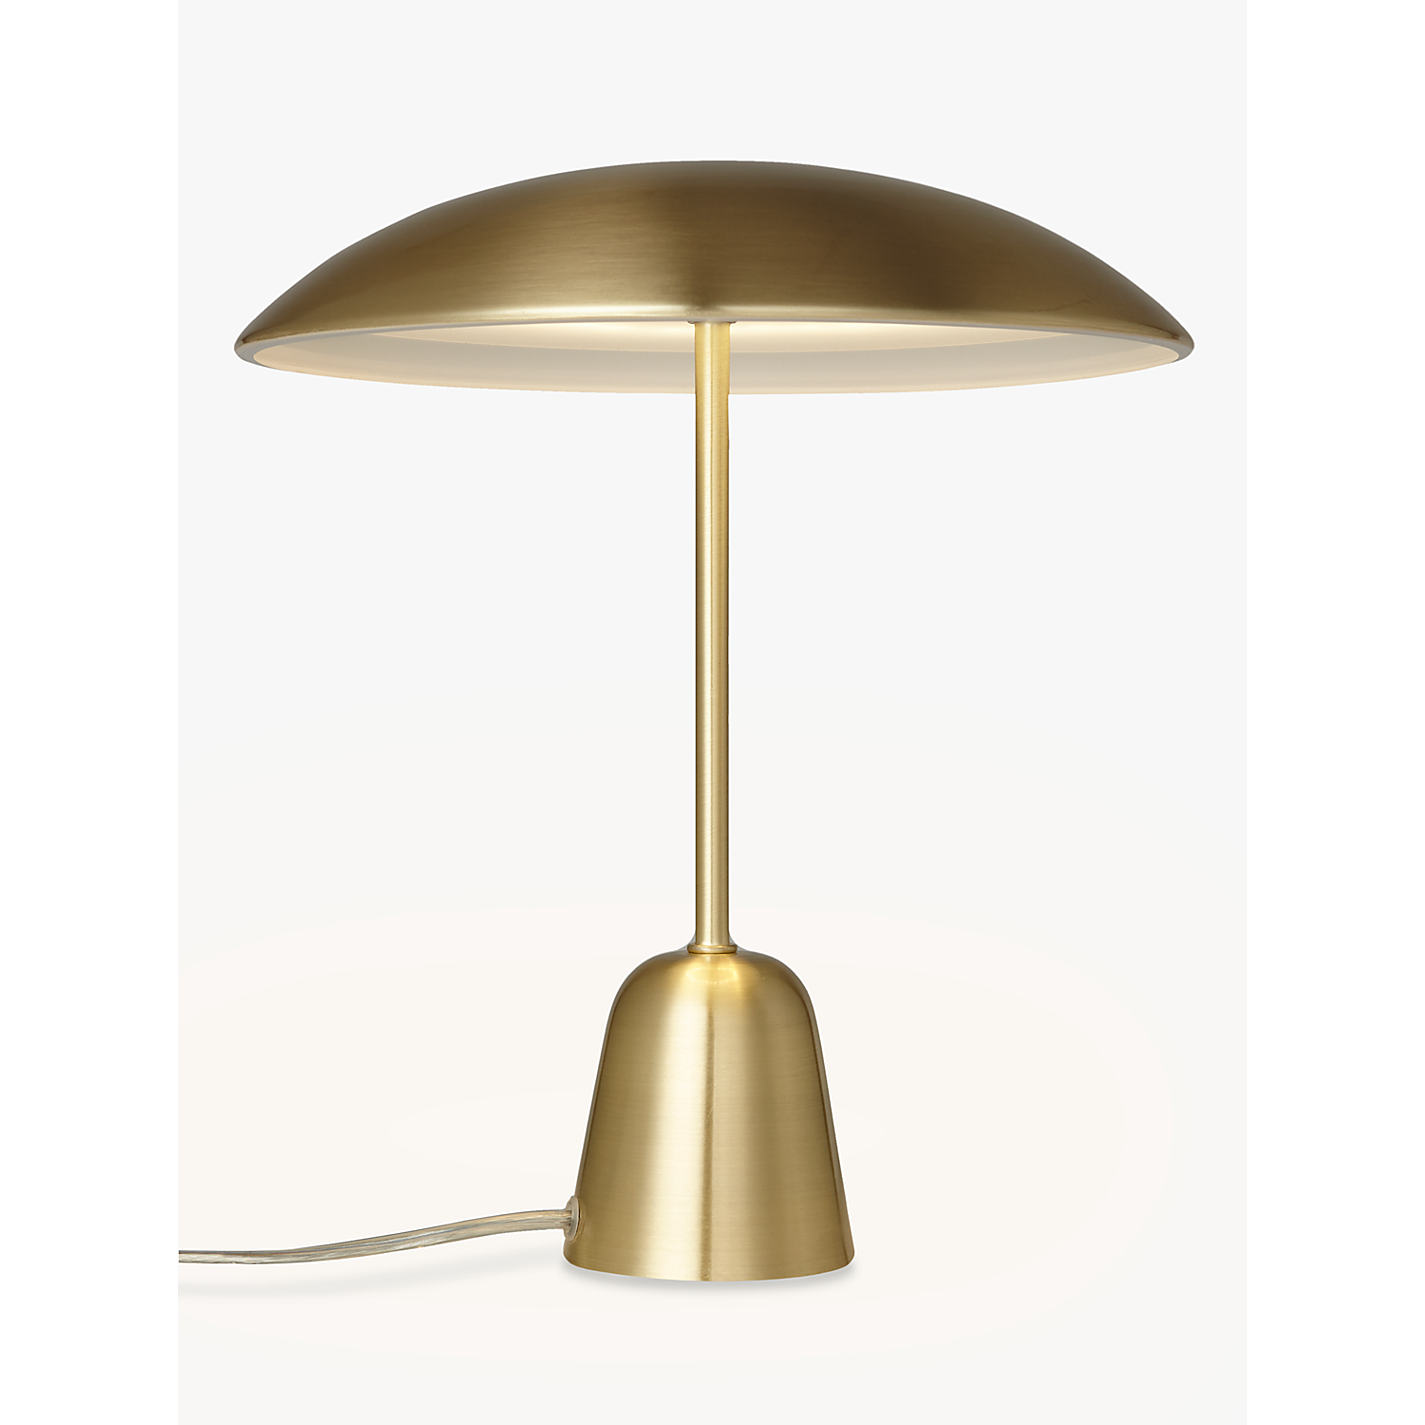 Buy design project by john lewis no053 led table lamp john lewis buy design project by john lewis no053 led table lamp online at johnlewis geotapseo Image collections